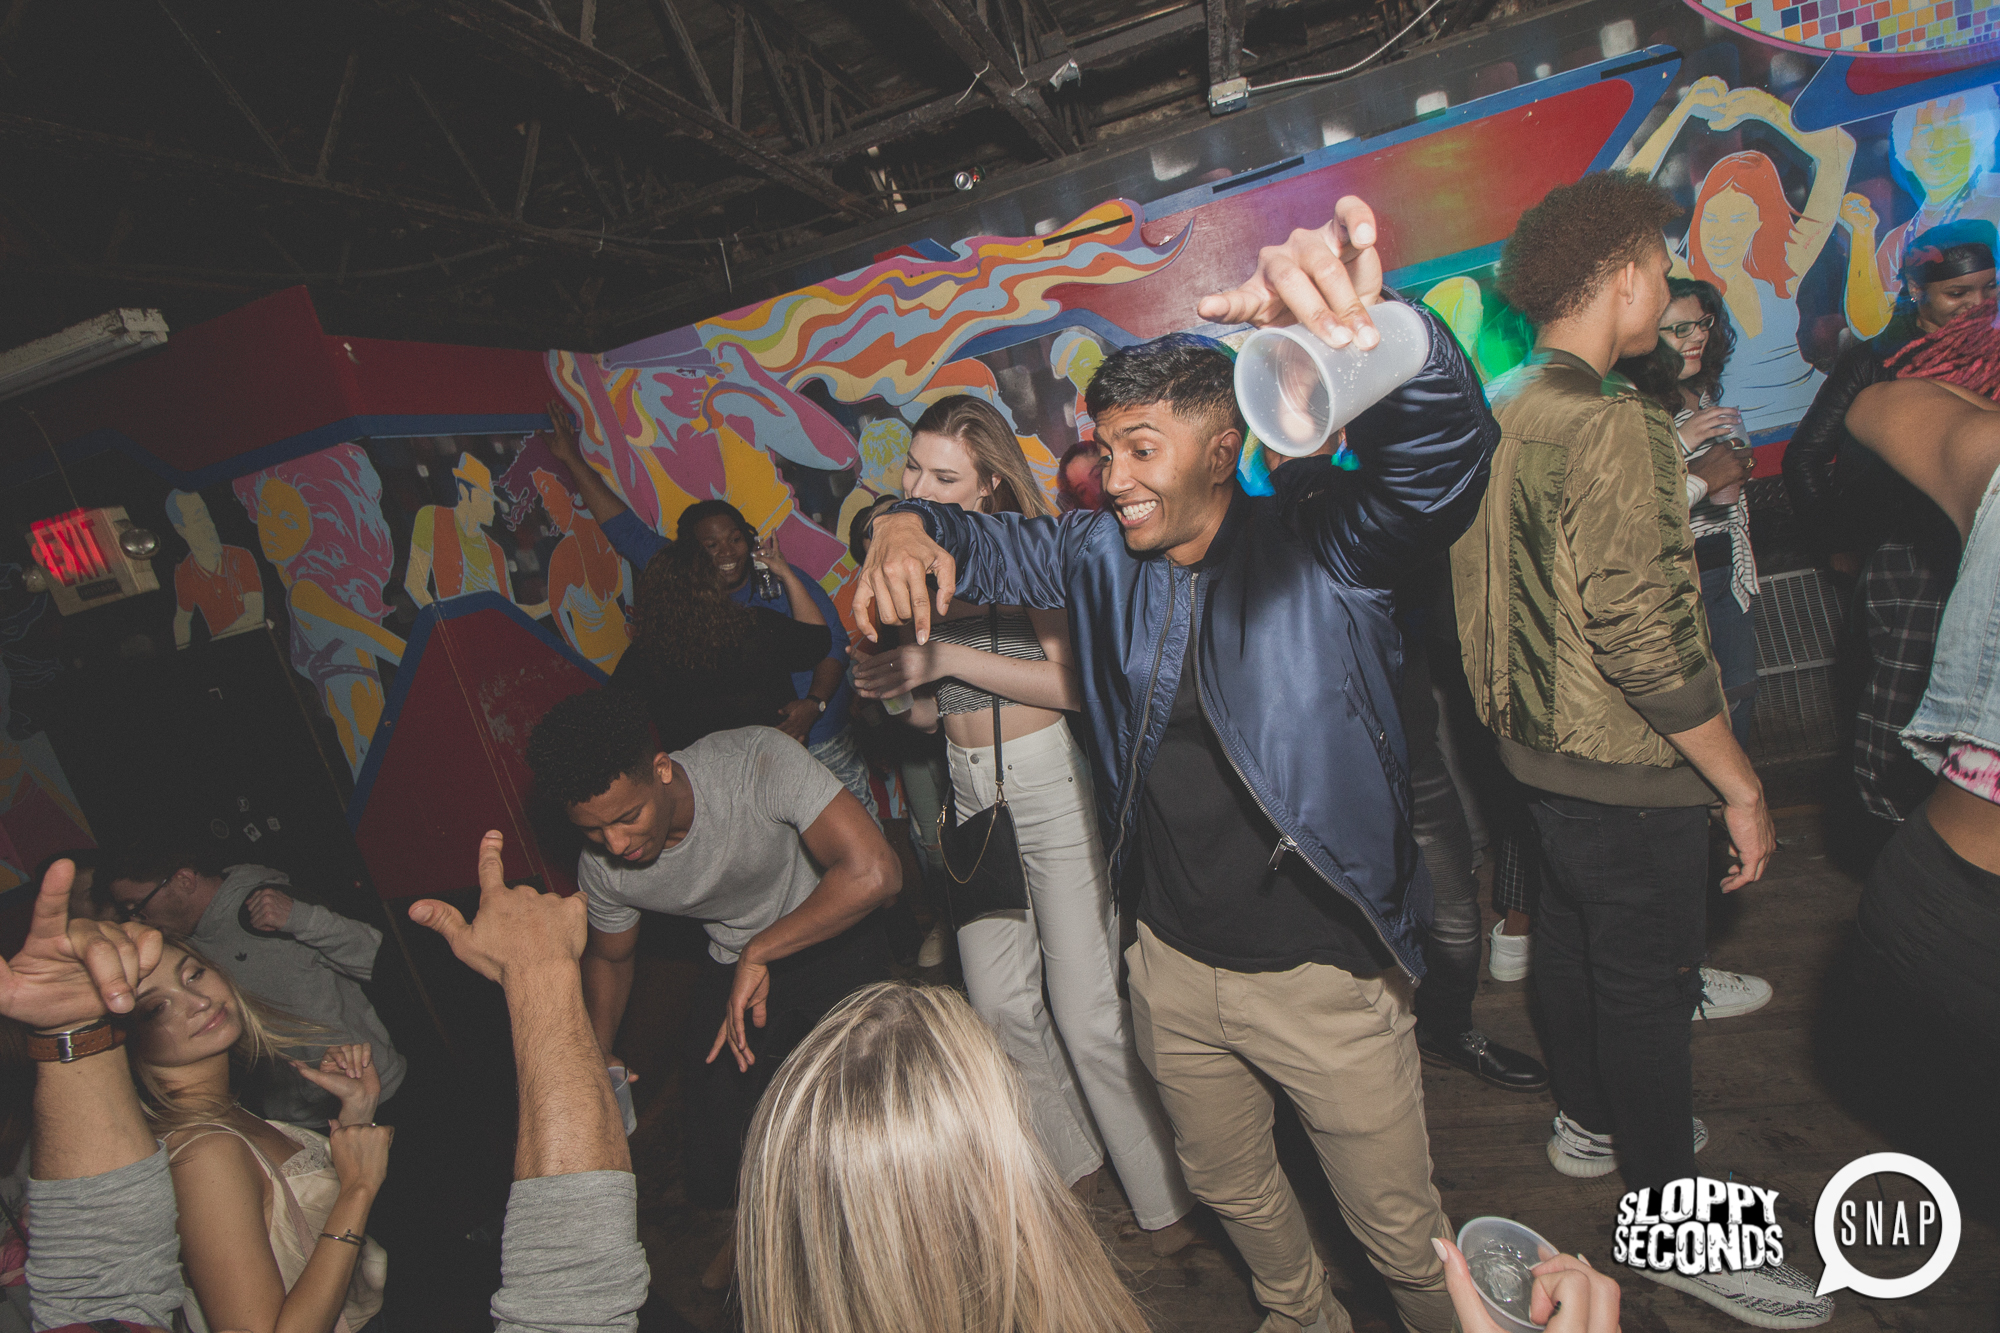 138Sloppy Seconds March2019 oh snap kid atlanta.JPG